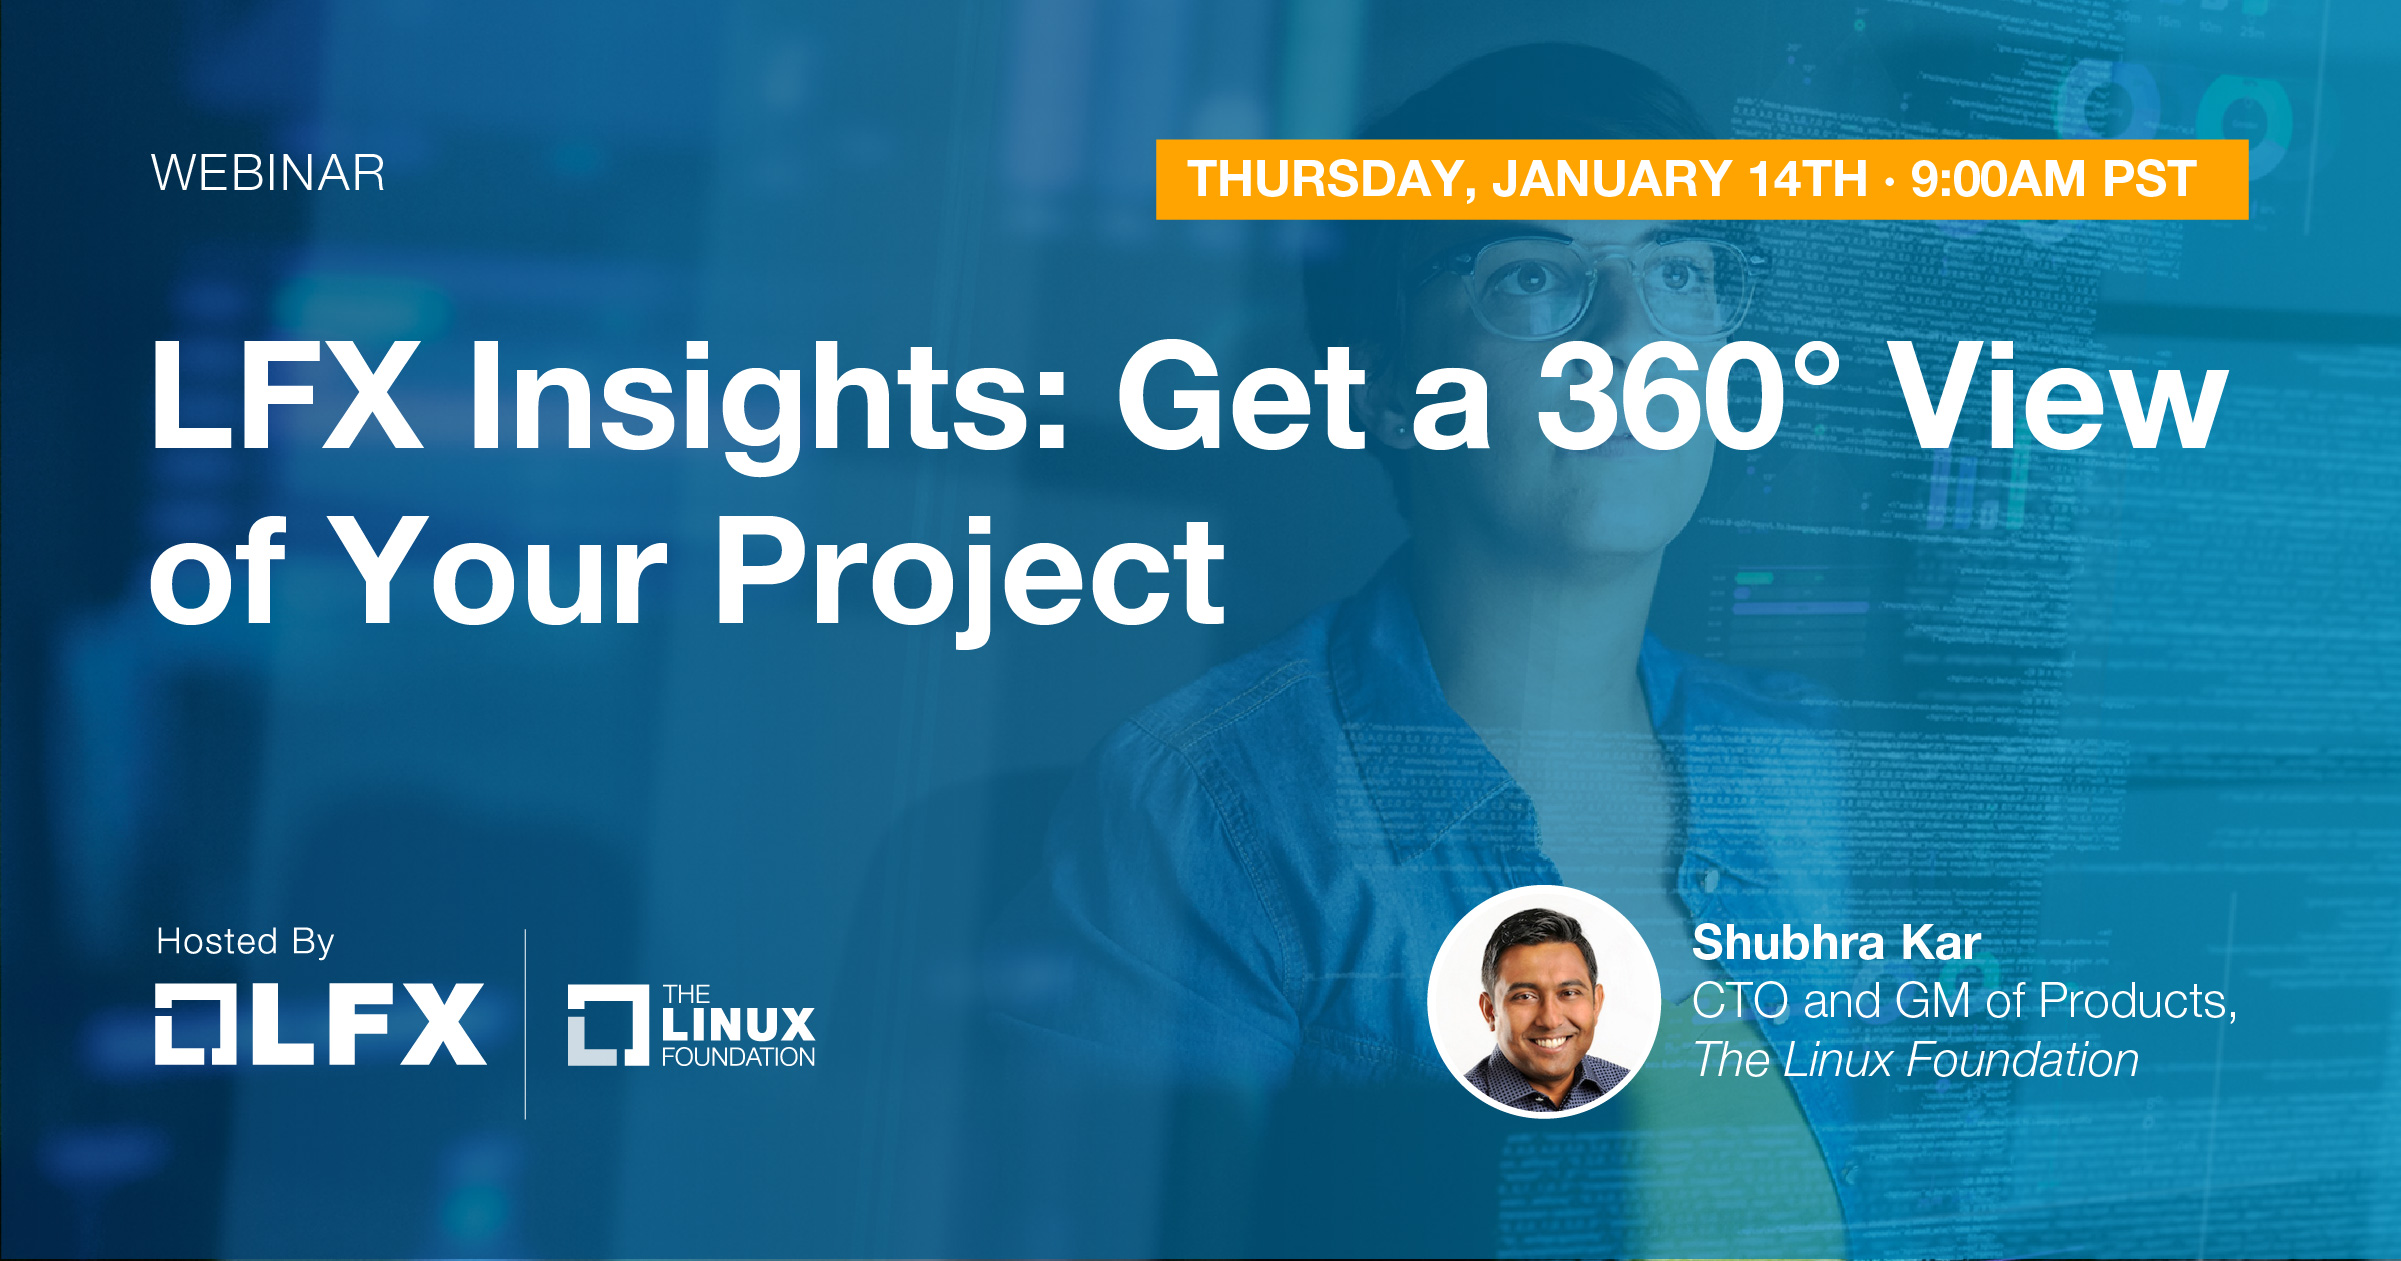 LFX Insights: Get a 360° View of Your Project